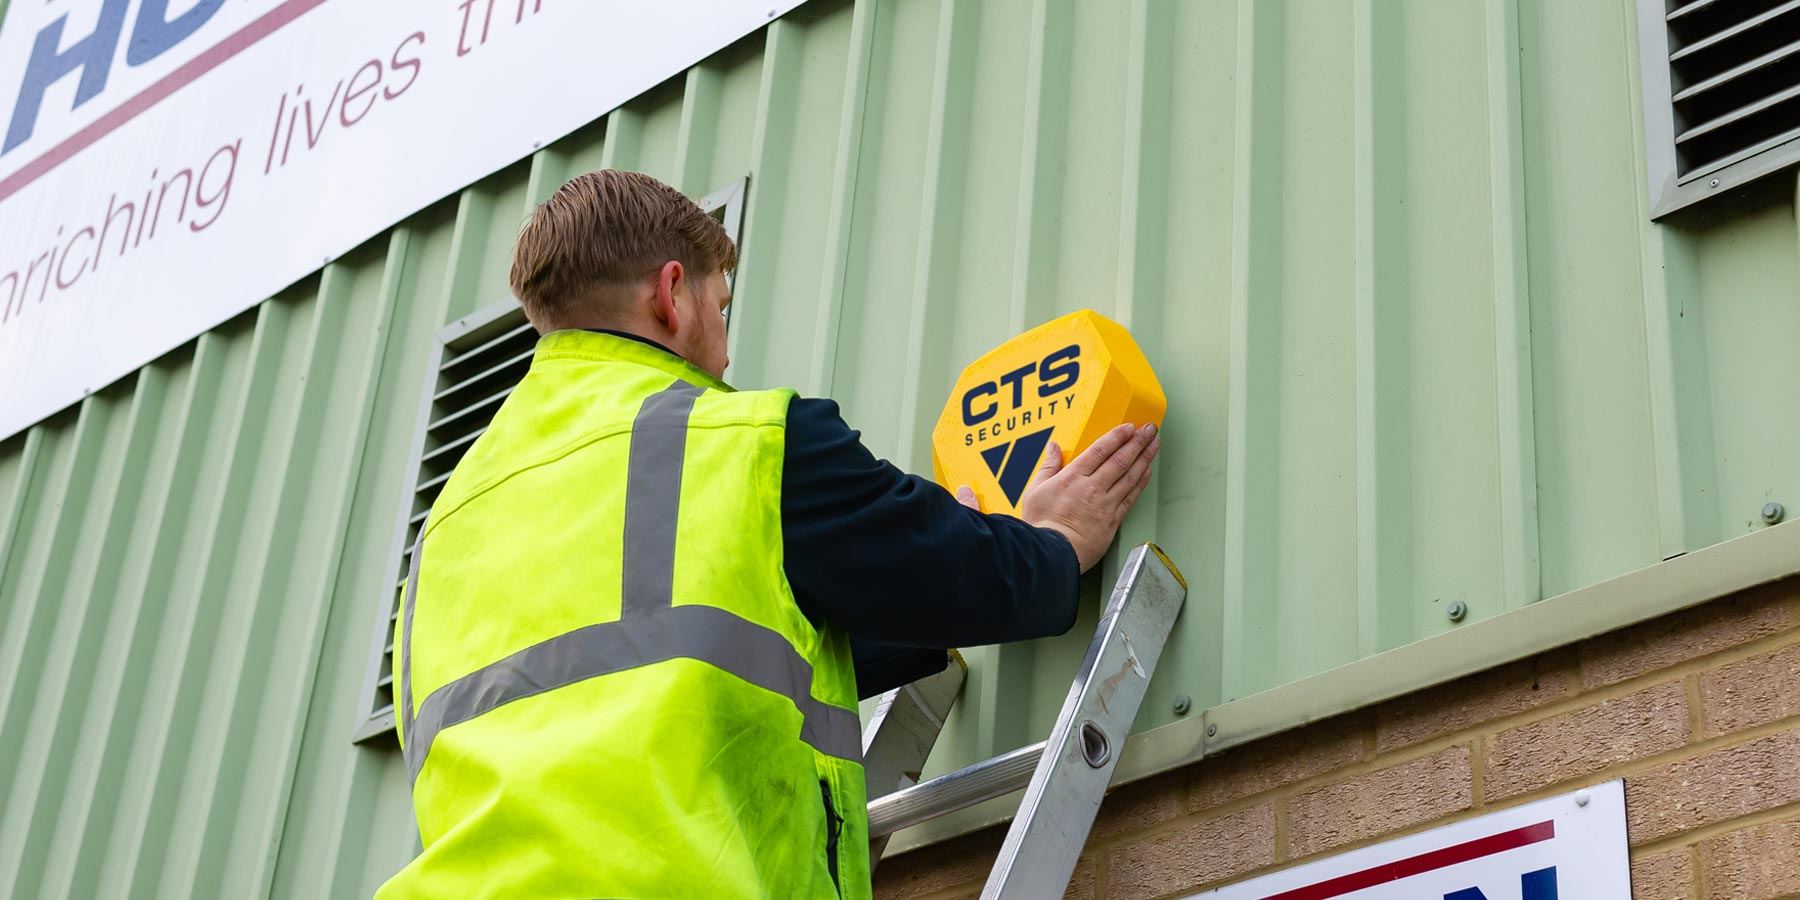 Intruder alarm installation by a CTS Engineer